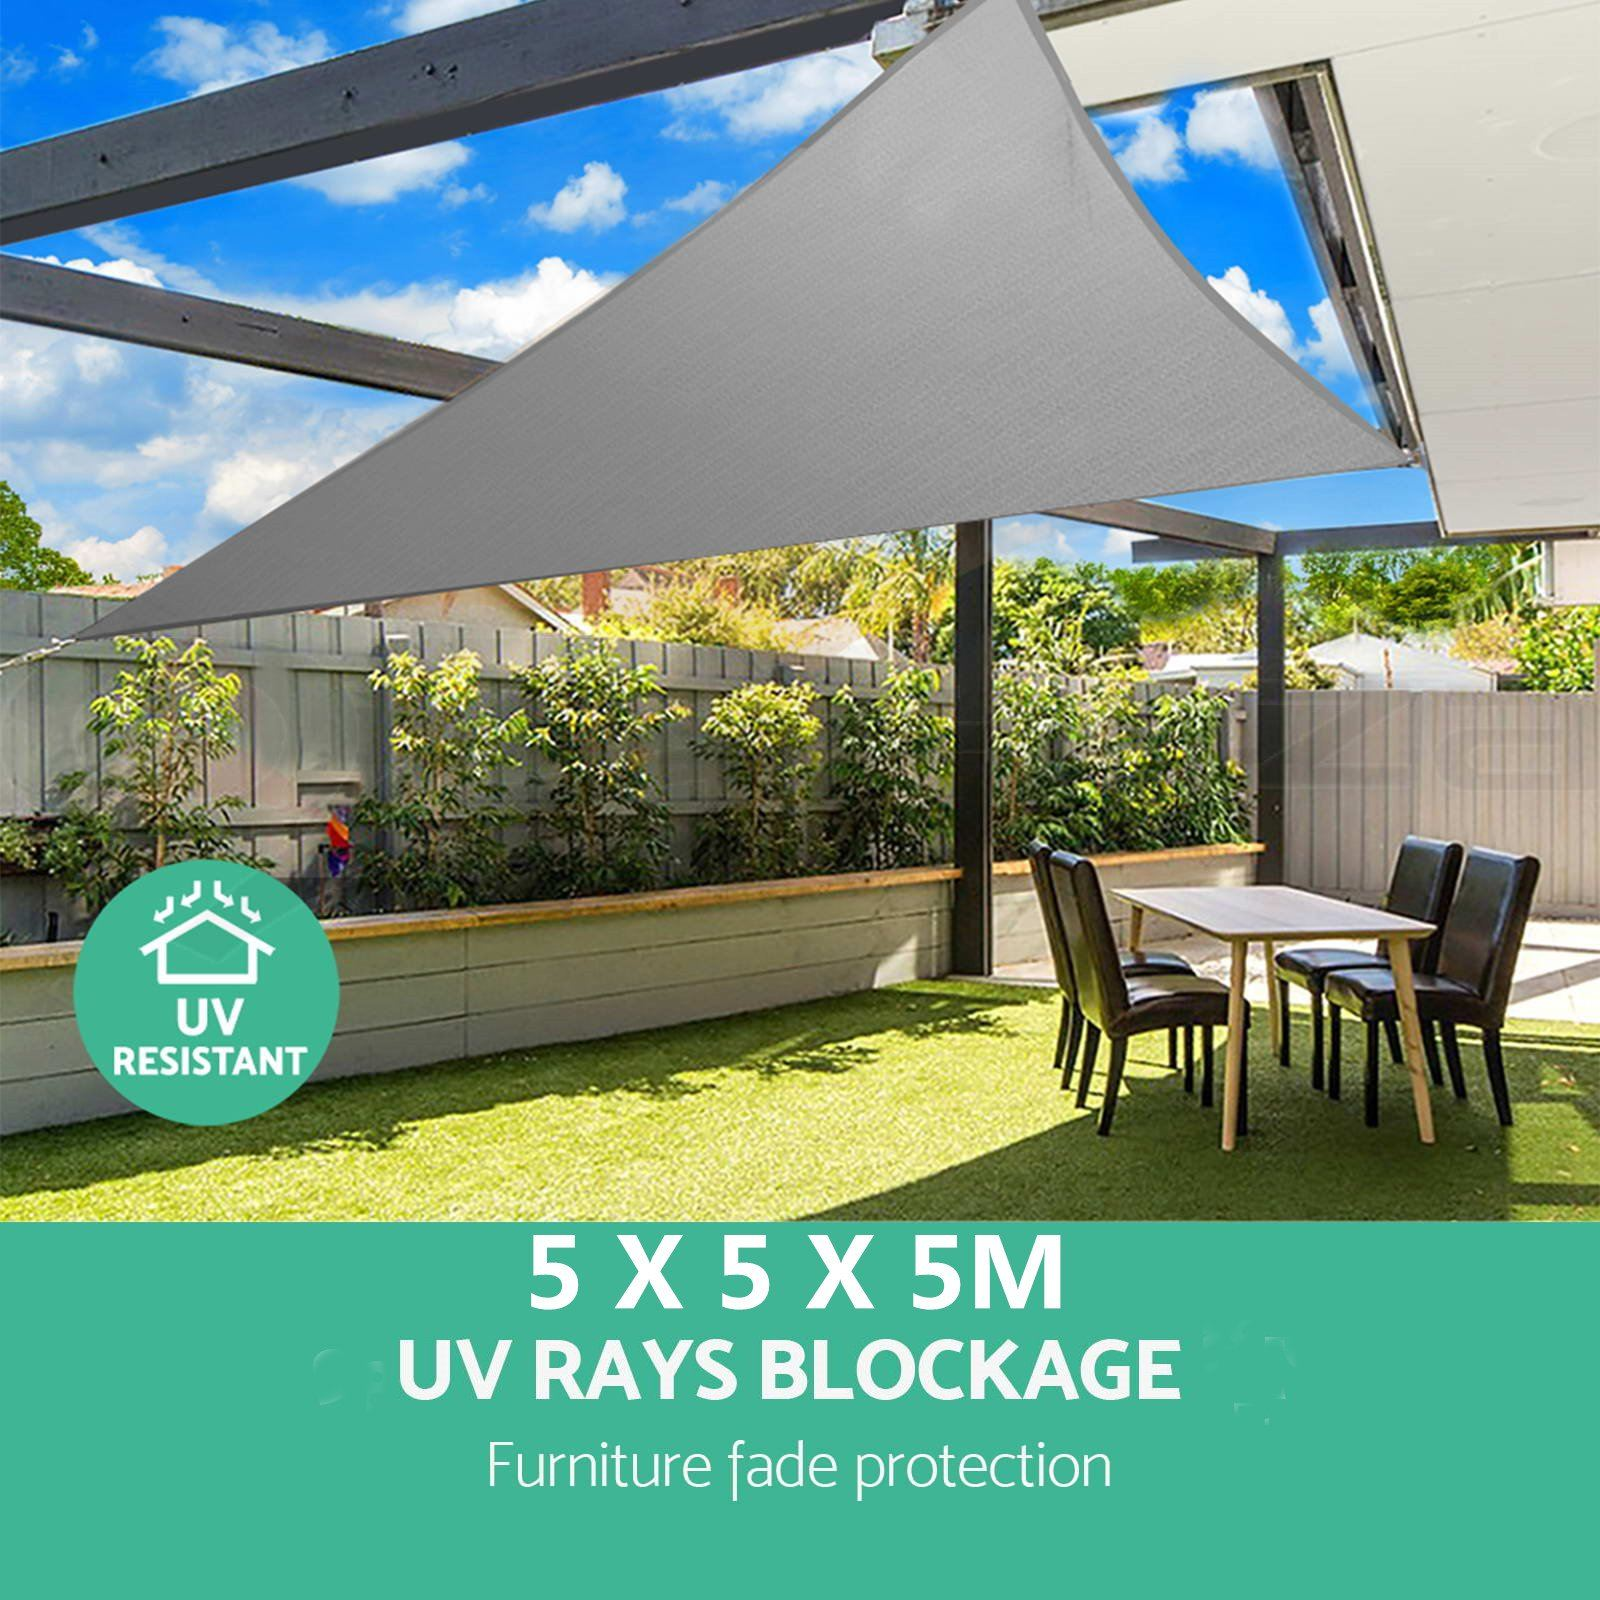 US $26.98 52% OFF|5m Triangle Shade Sail Net Cloth Outdoor Swimming Pool  Waterproof Sun Shade Sail Prevent UV Canopy Home Garden Awning Cover Cap-in  ...